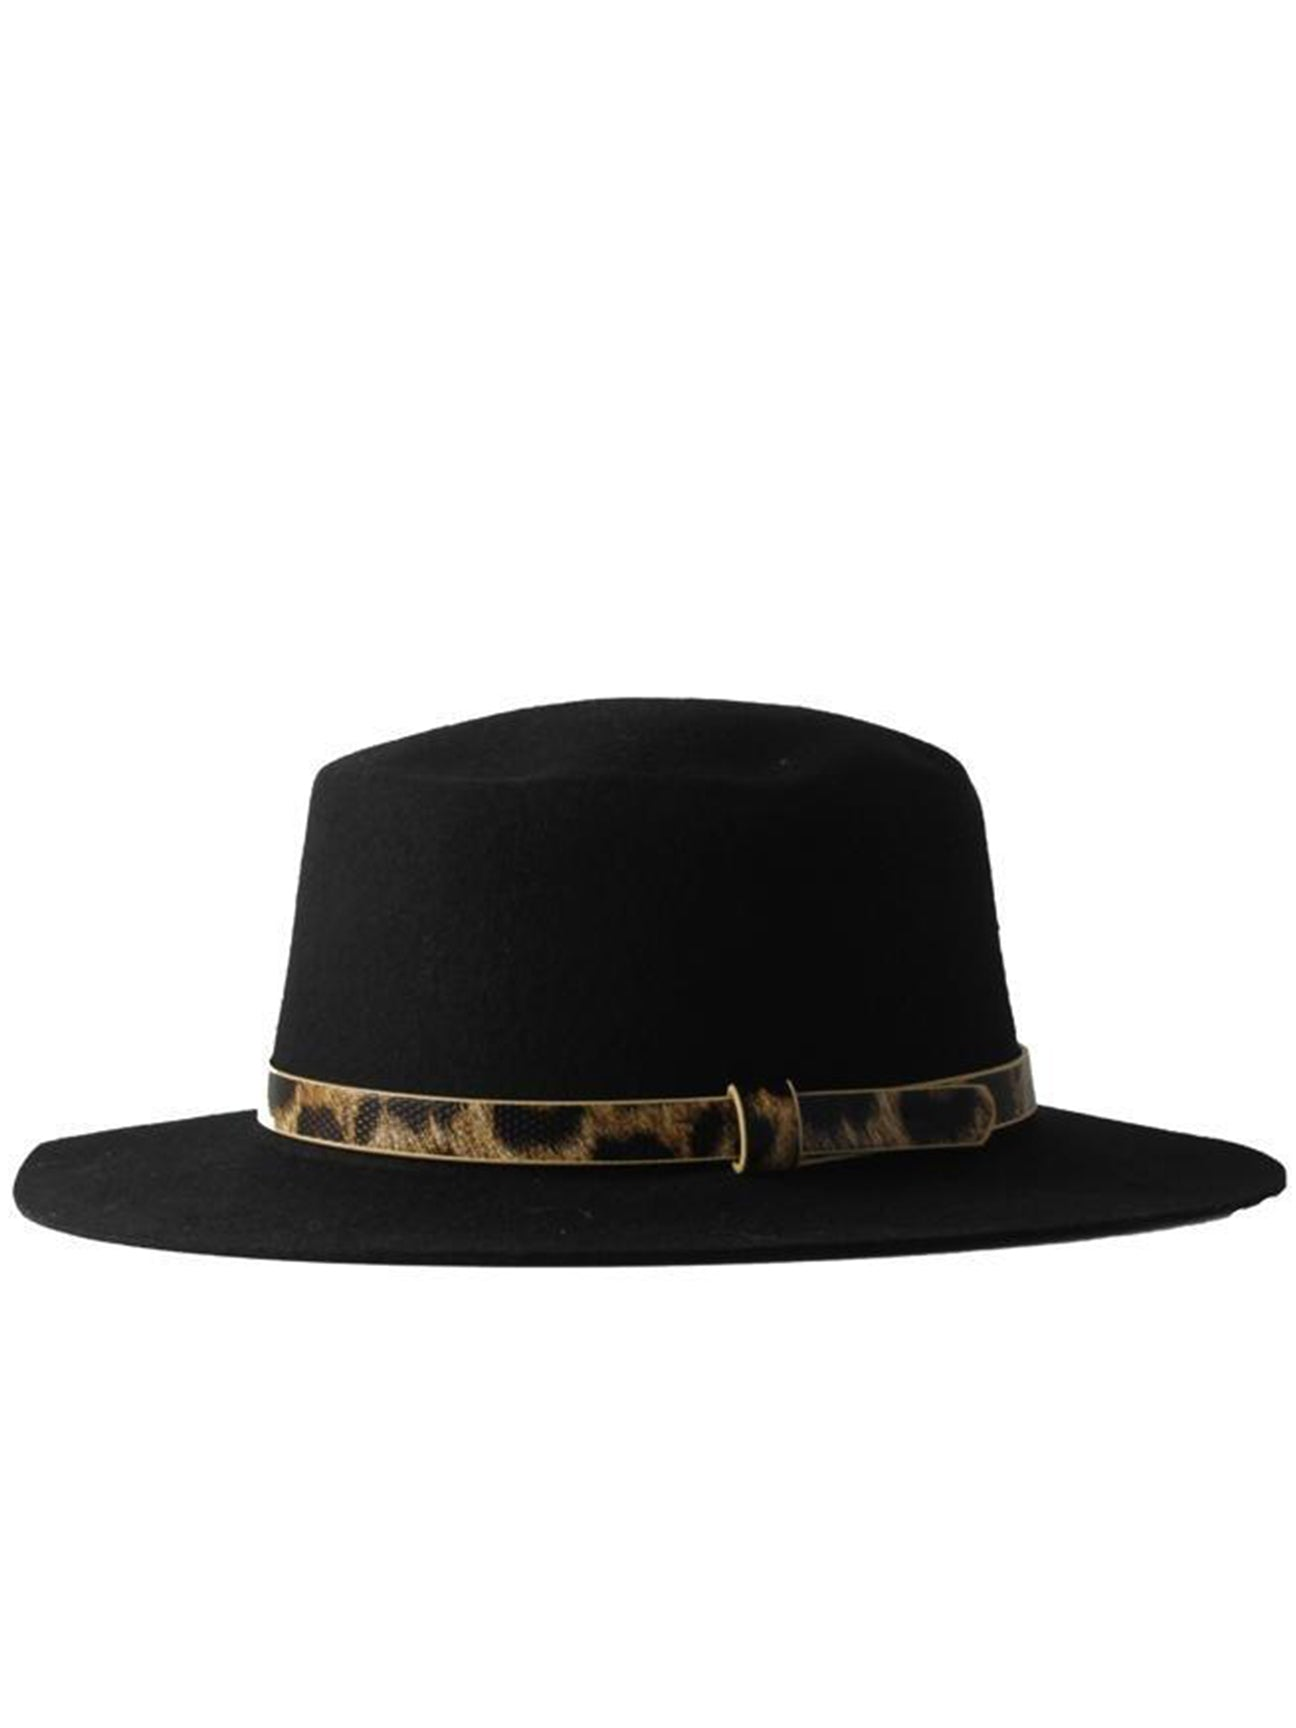 Beautiful 100% Wool Black Fedora Hat with PU Leopard Print Band